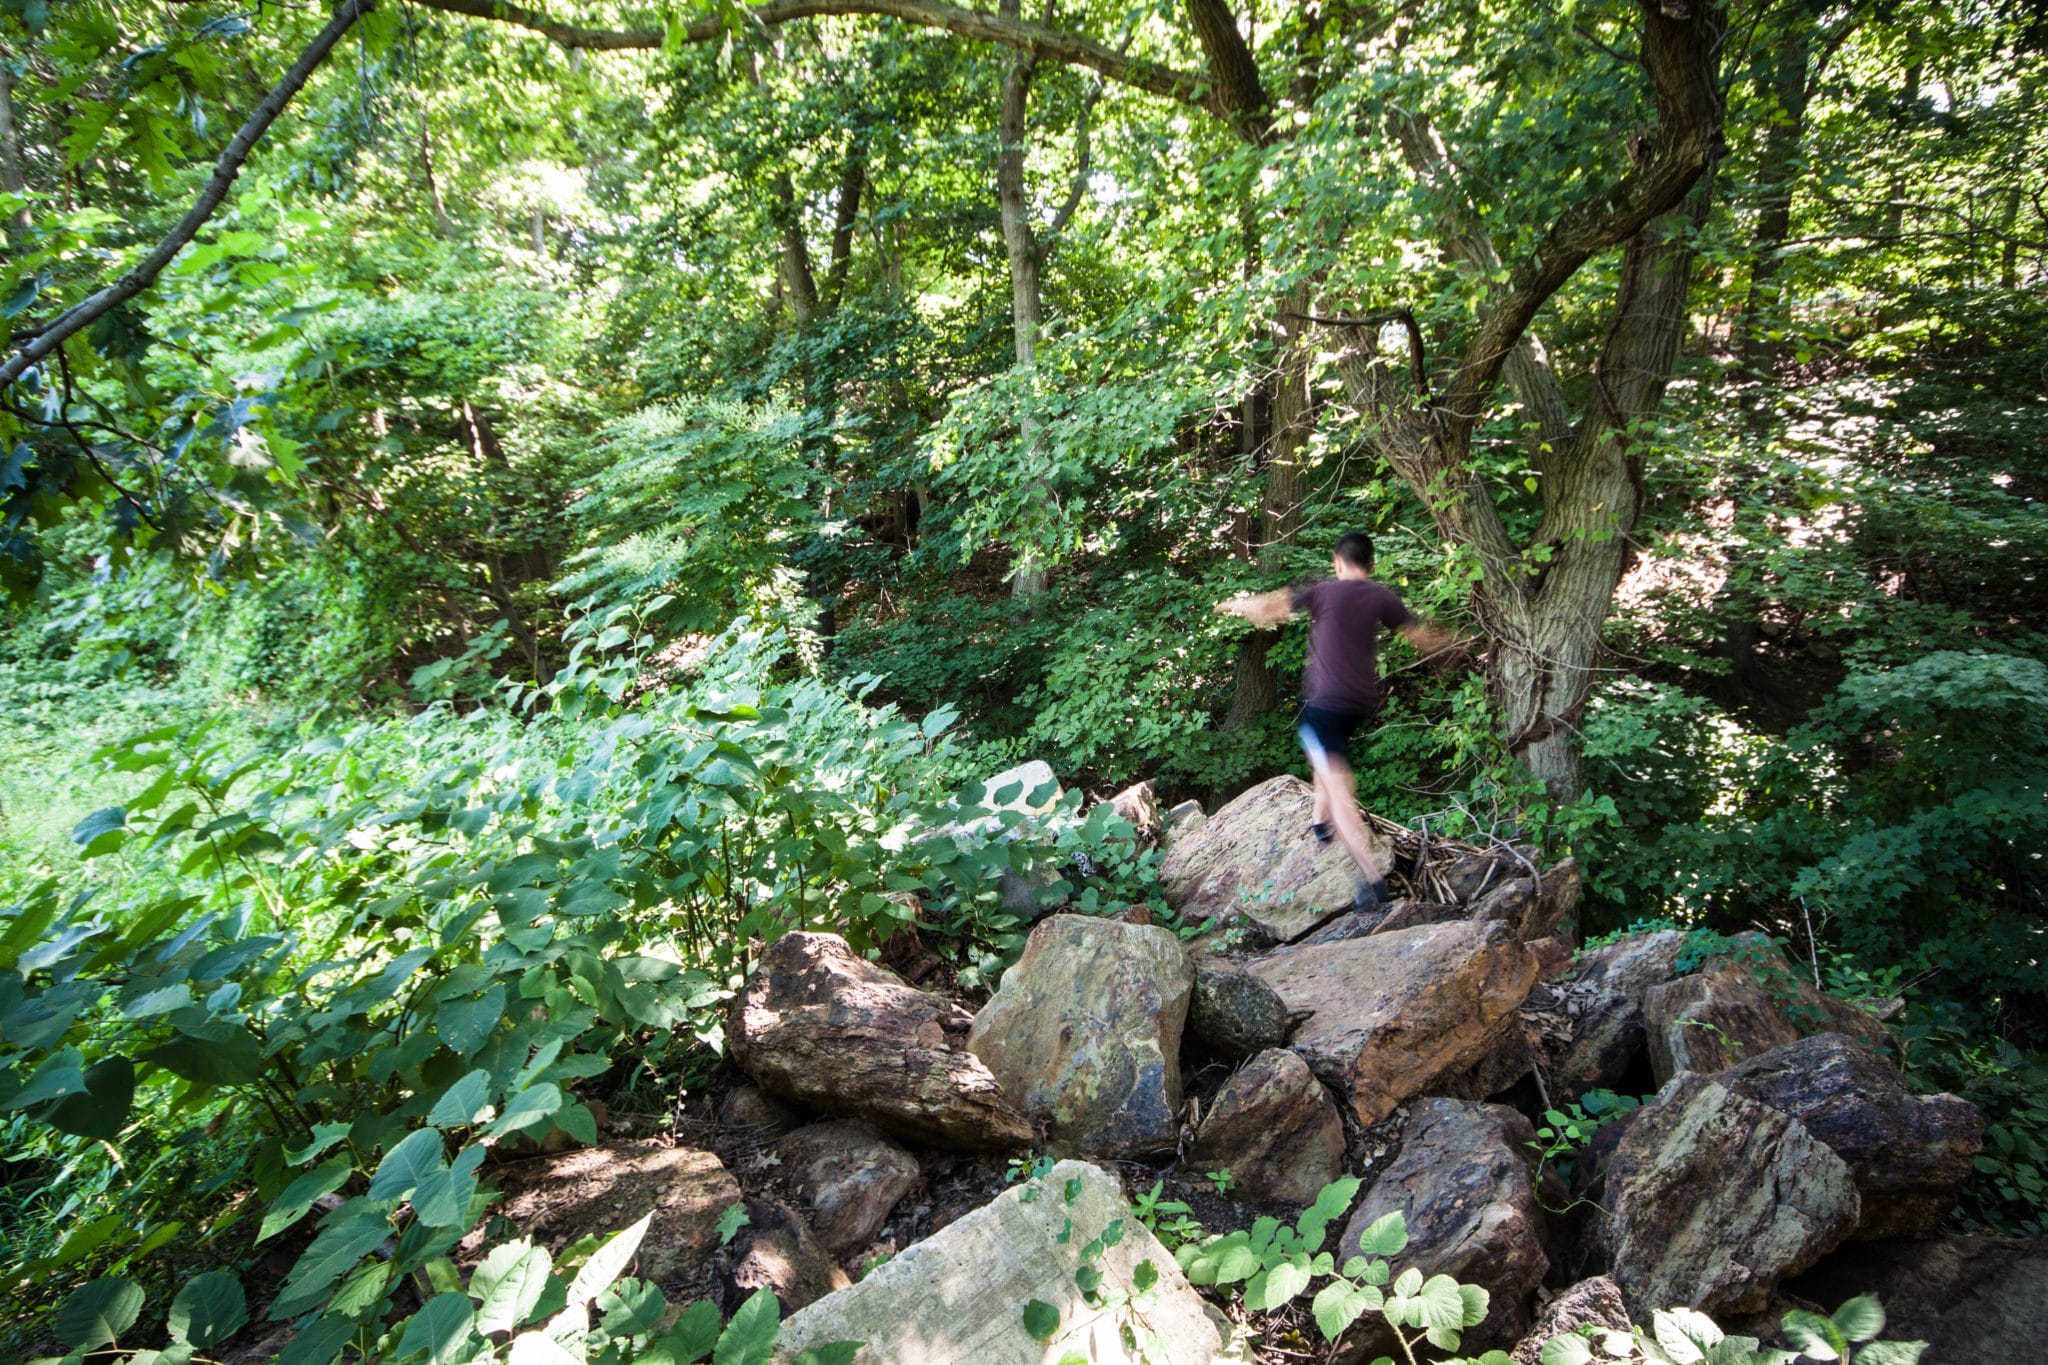 An image of a young man hiking on Heths Run rocks.